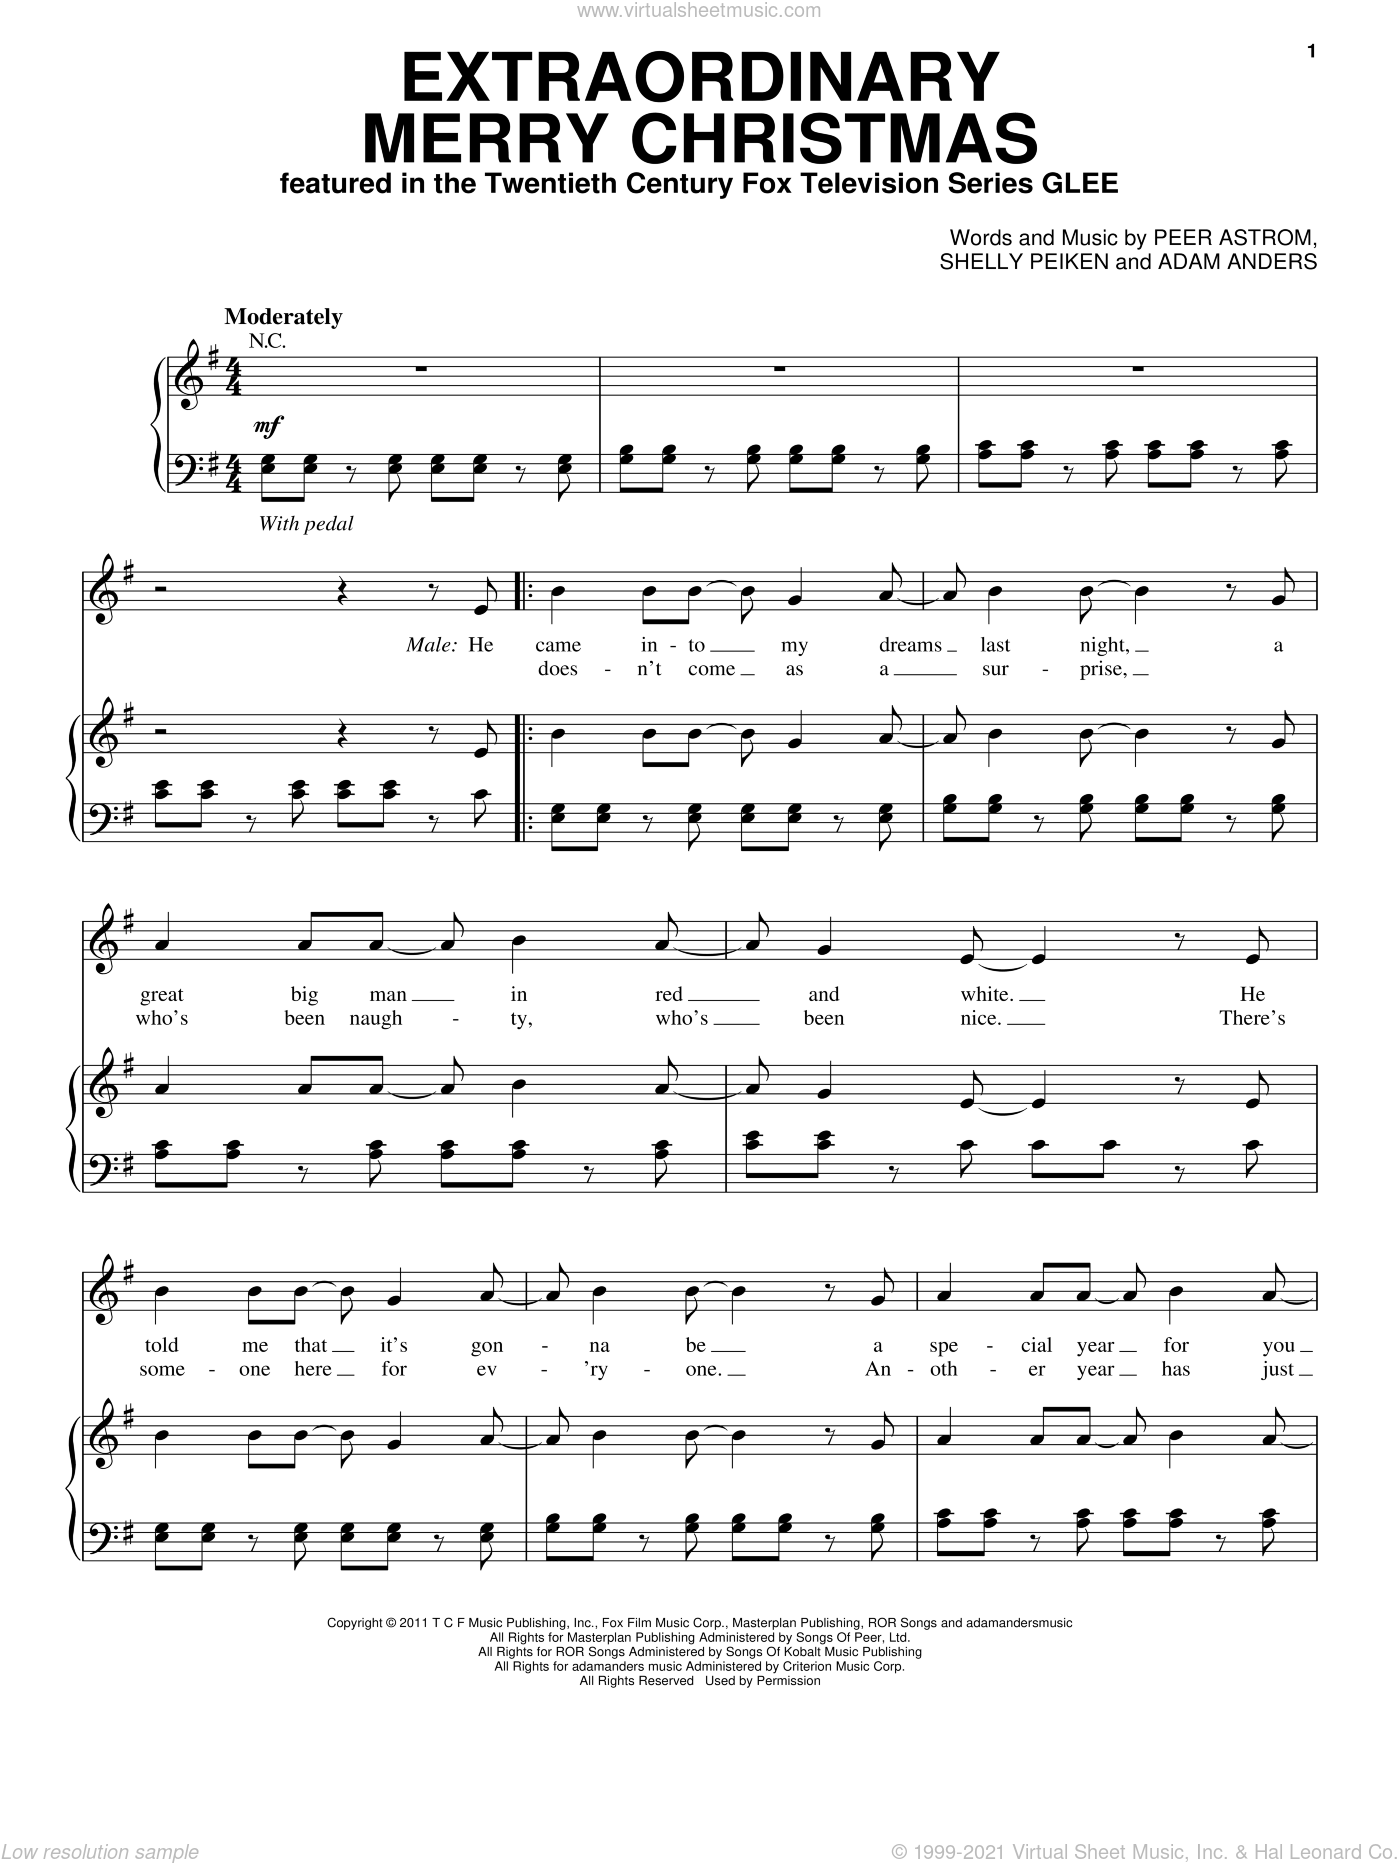 Extraordinary Merry Christmas sheet music for voice, piano or guitar by Glee Cast, Adam Anders, Peer Astrom and Shelly Peiken, intermediate skill level